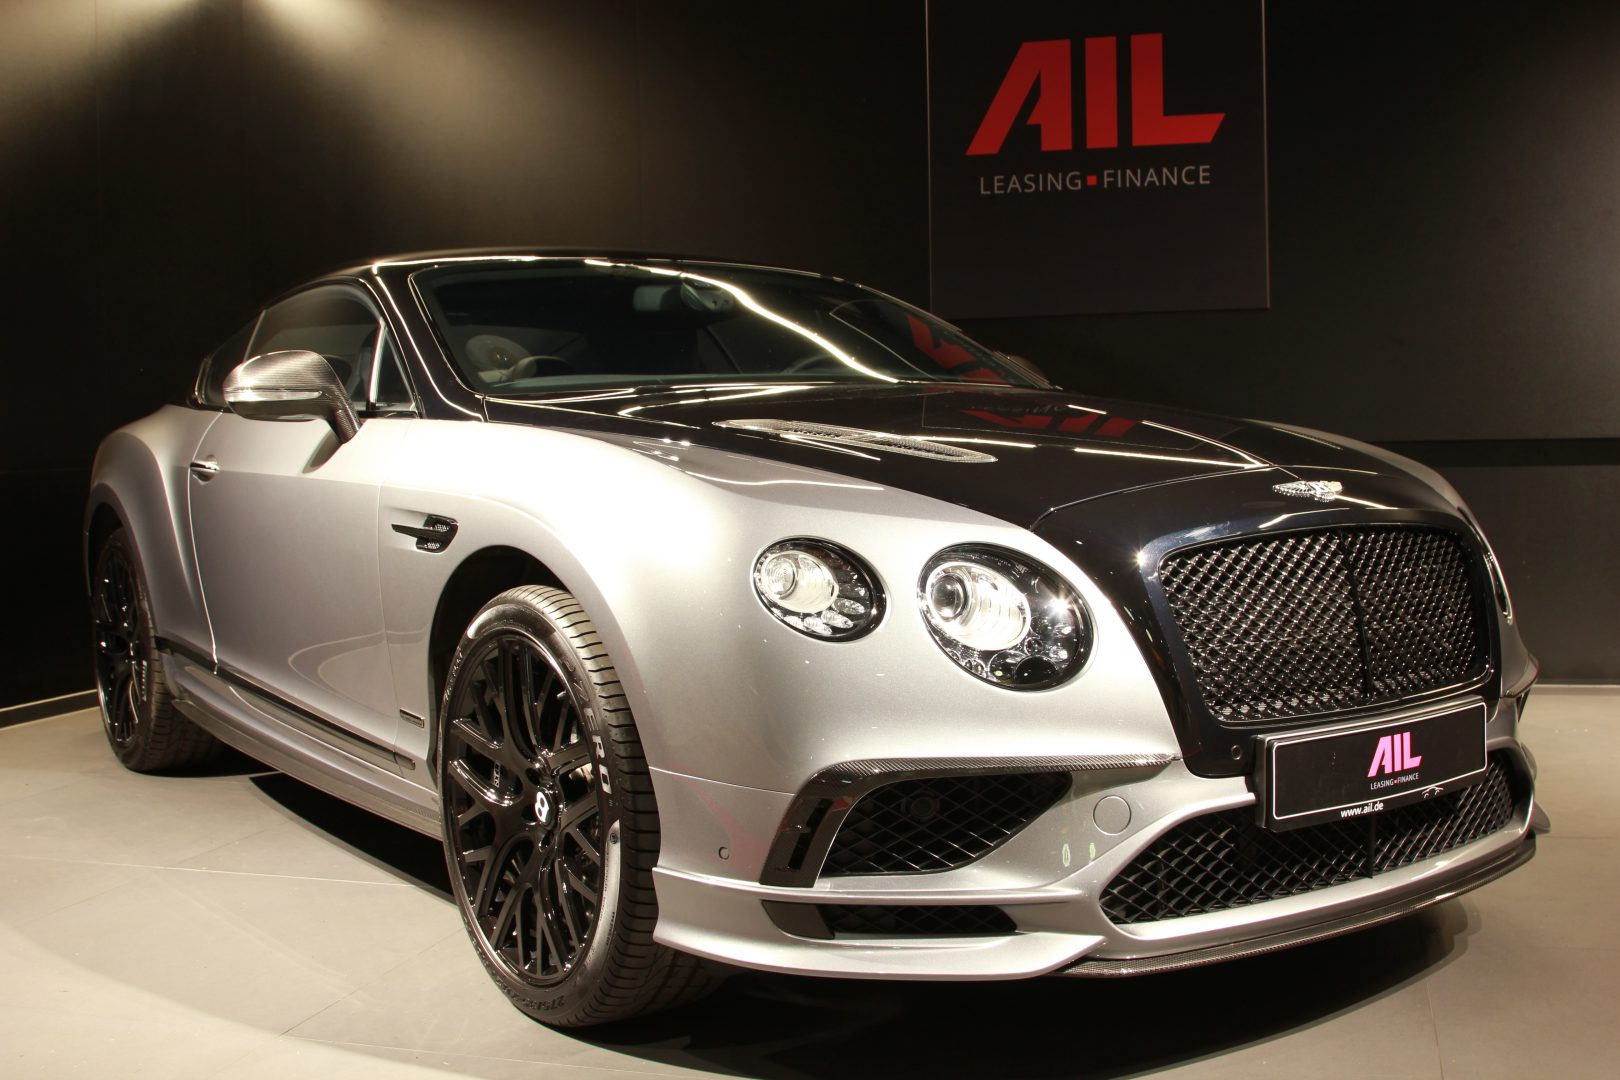 bentley continental supersports 1of 710 ail leasing m nchen ag. Black Bedroom Furniture Sets. Home Design Ideas